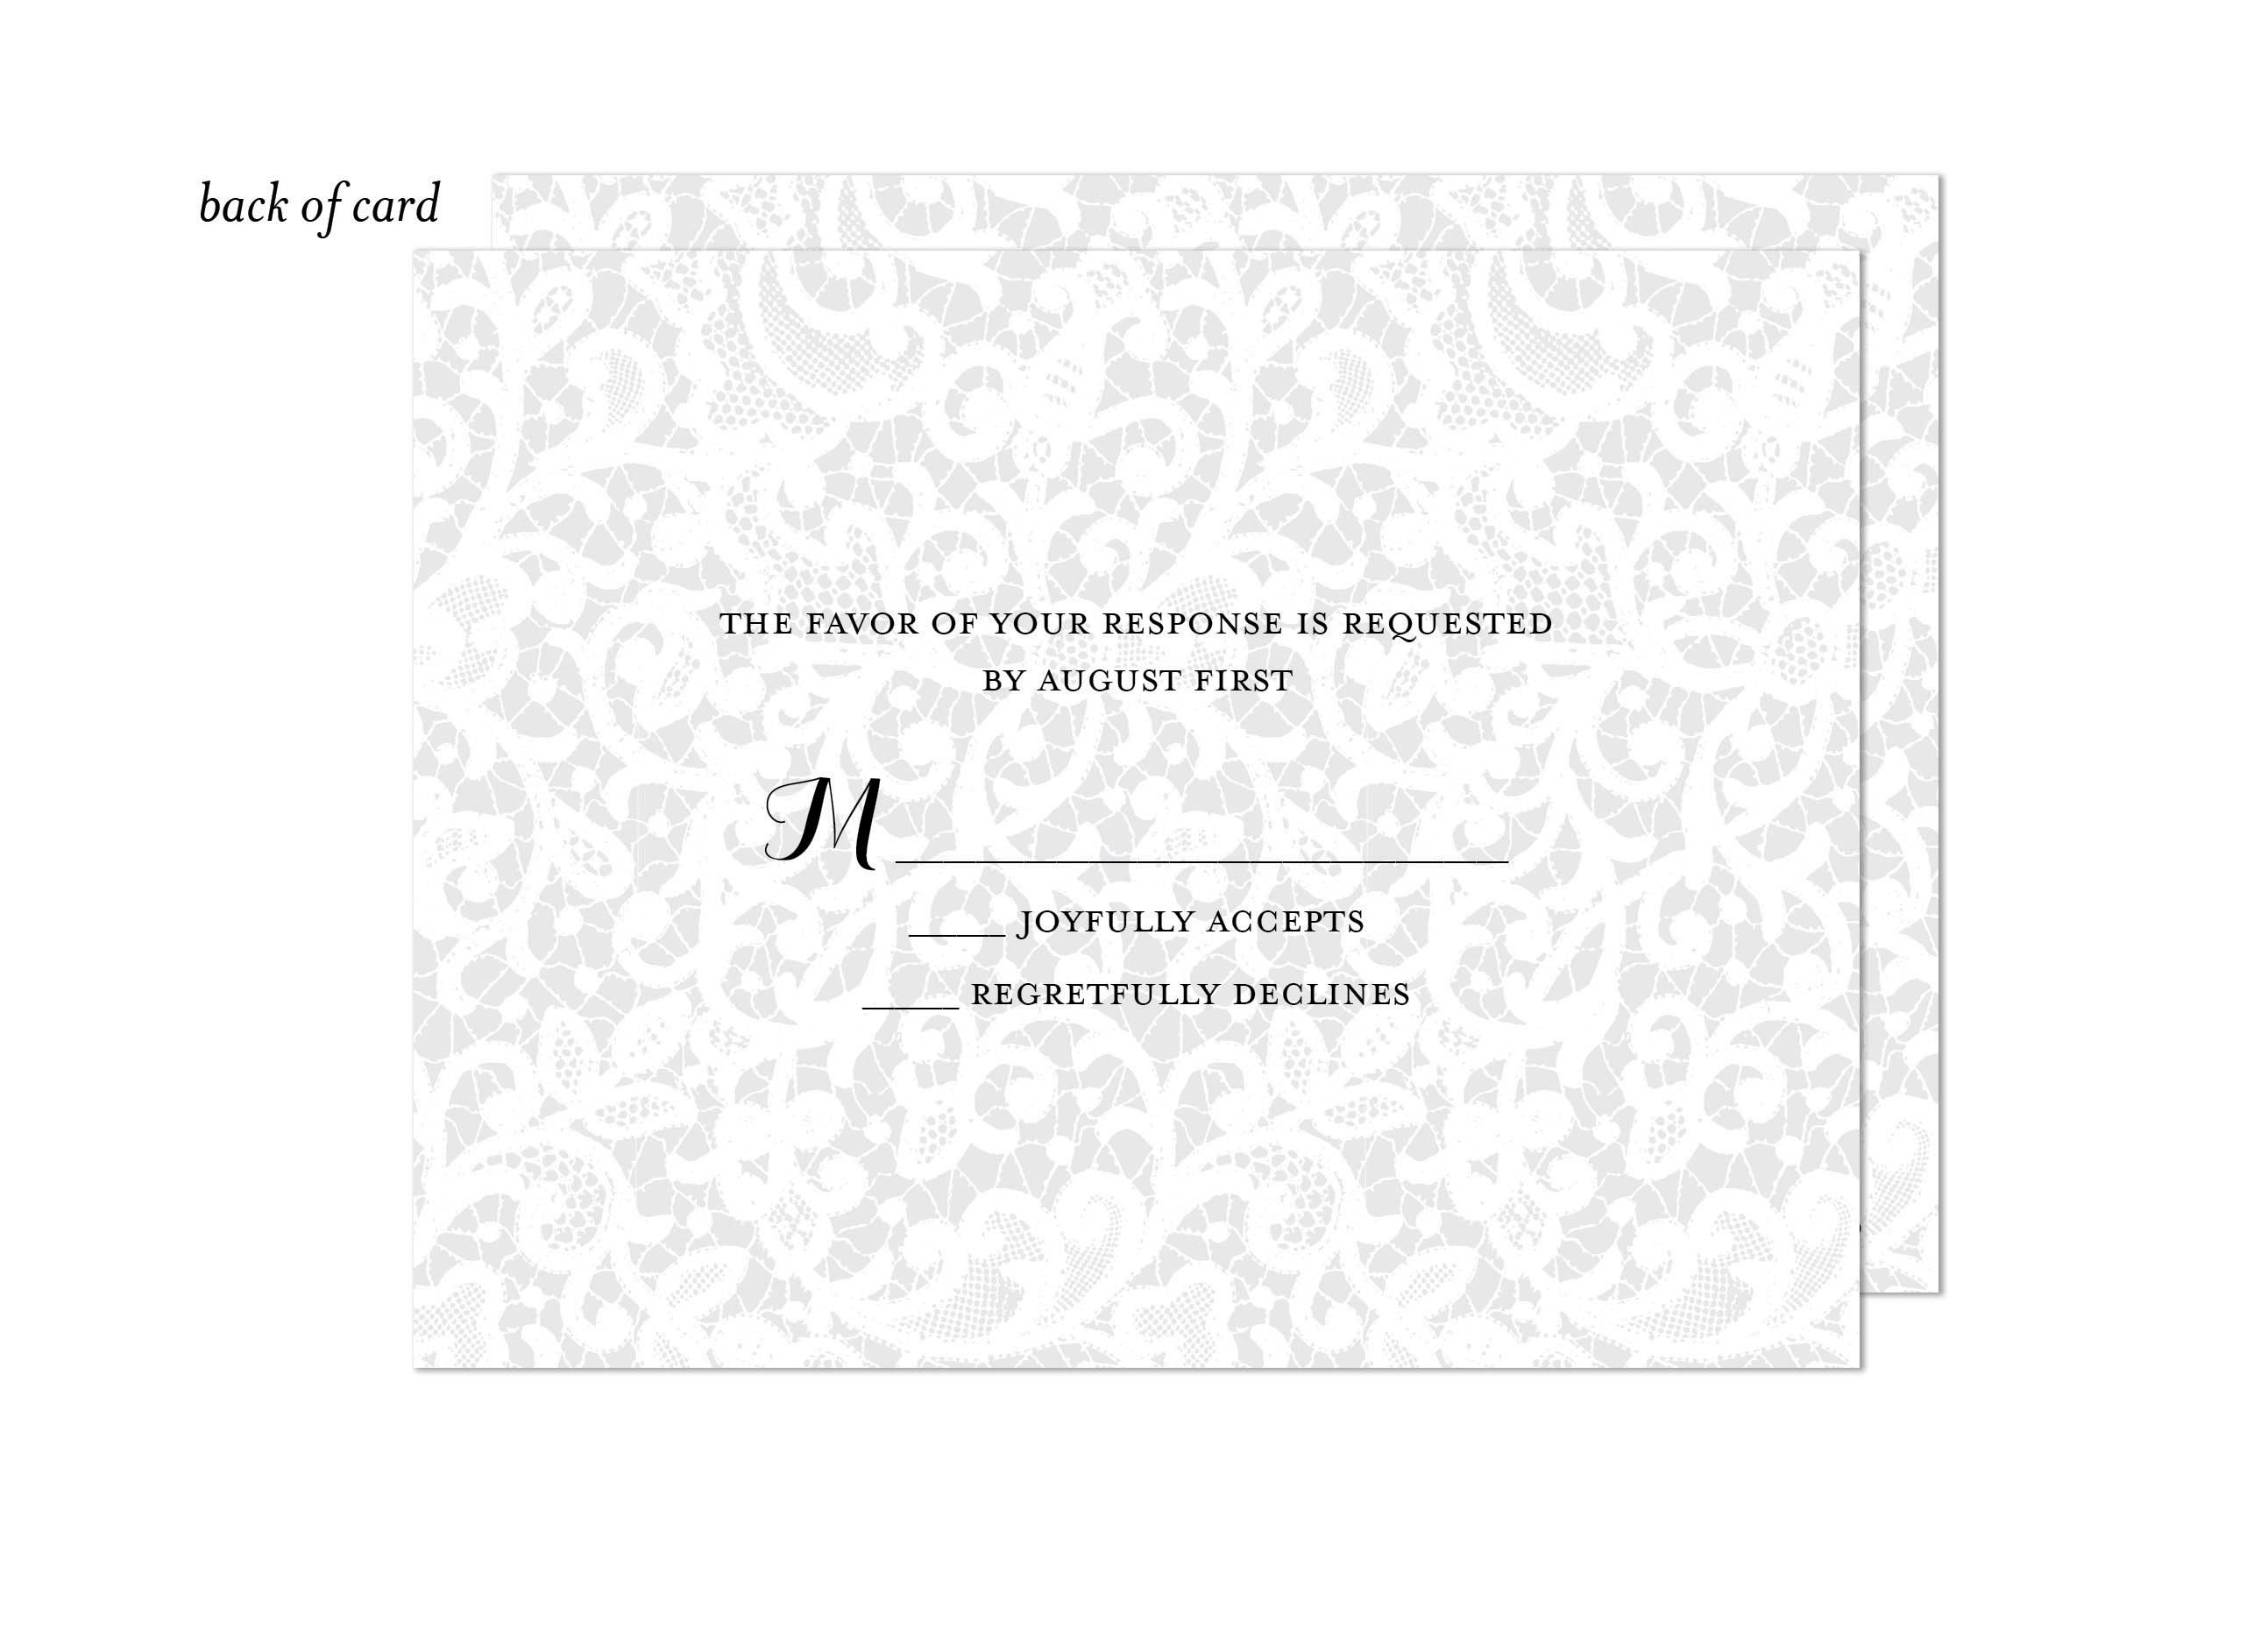 Chantilly Lace Wedding Suite Response Card